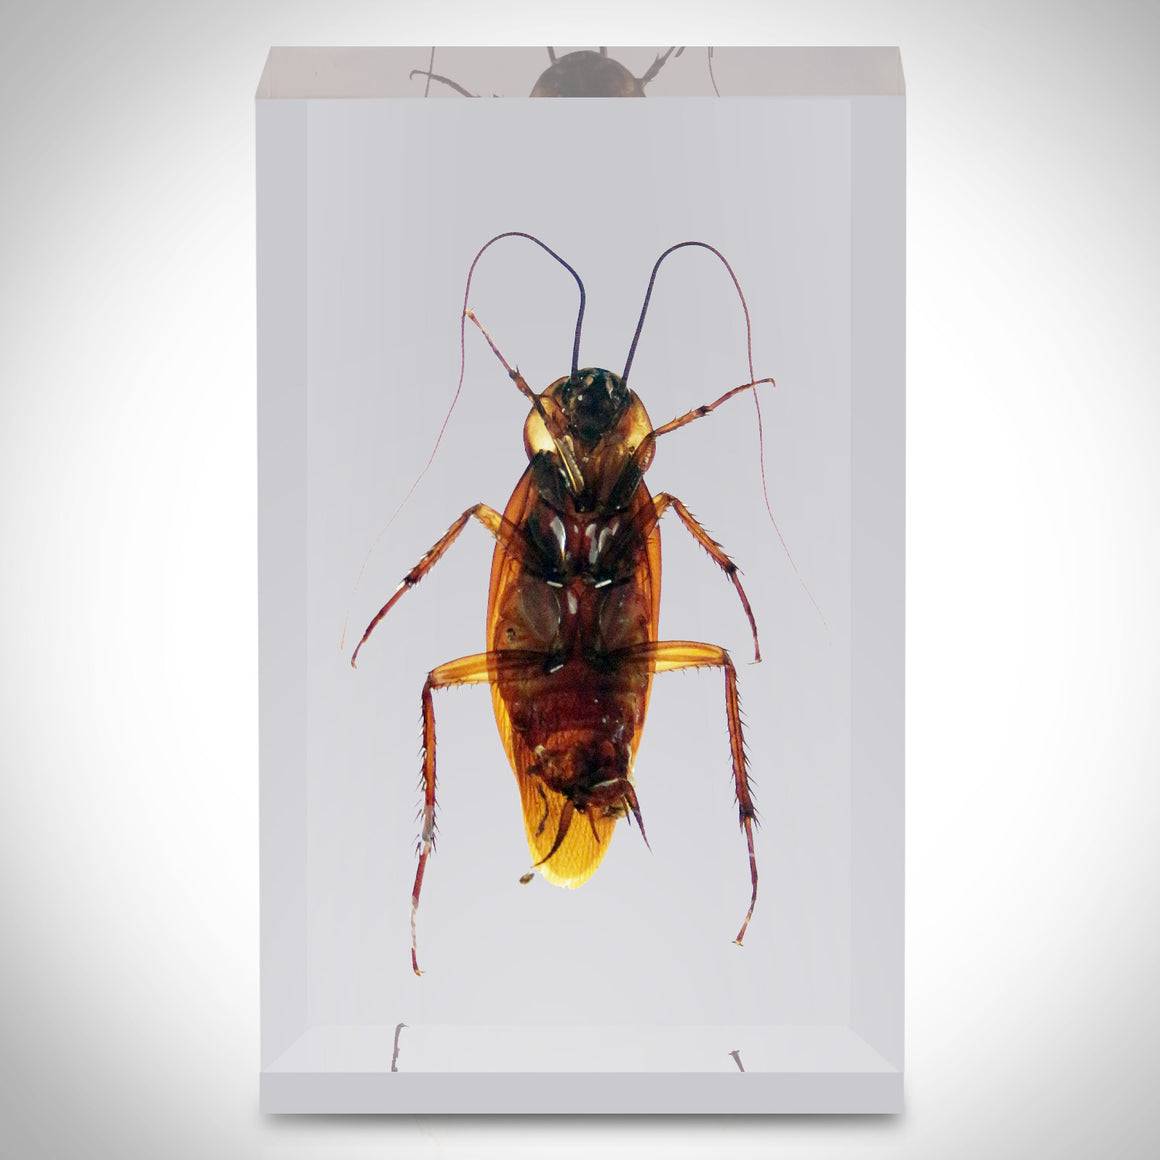 10 INSECT ORDERS COLLECTION IN RESIN / DISPLAY CASE